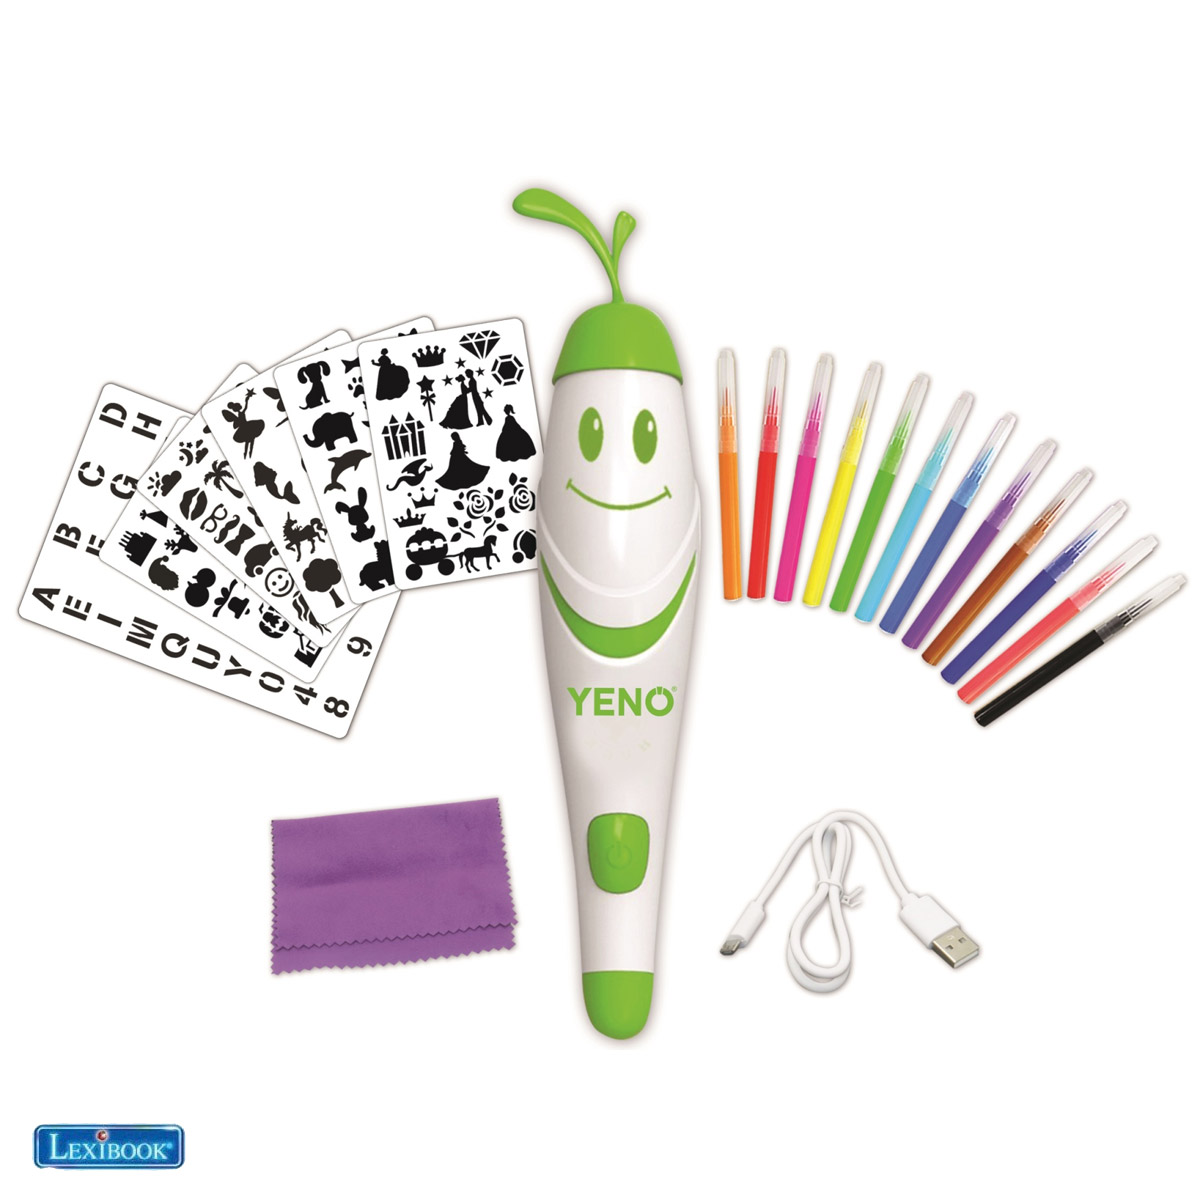 Lexibook - Aerograph, the magical electronic air spray marker incl. stencils and 12 watercolor pens (CR800)